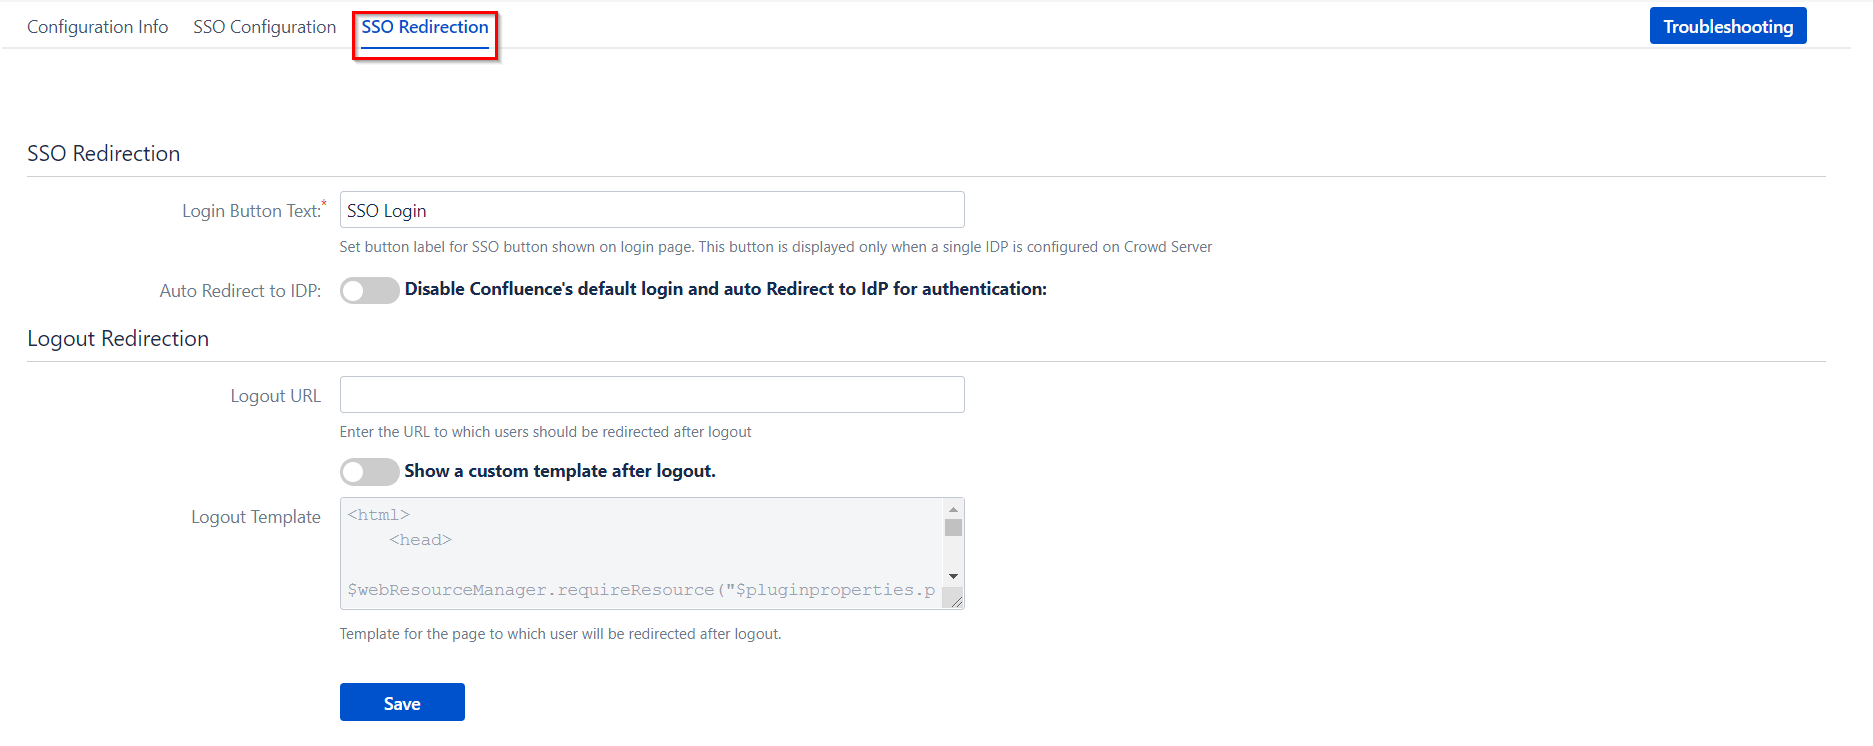 SAML Single Sign On (SSO) Connector for Crowd and Confluence, Button and logout settings